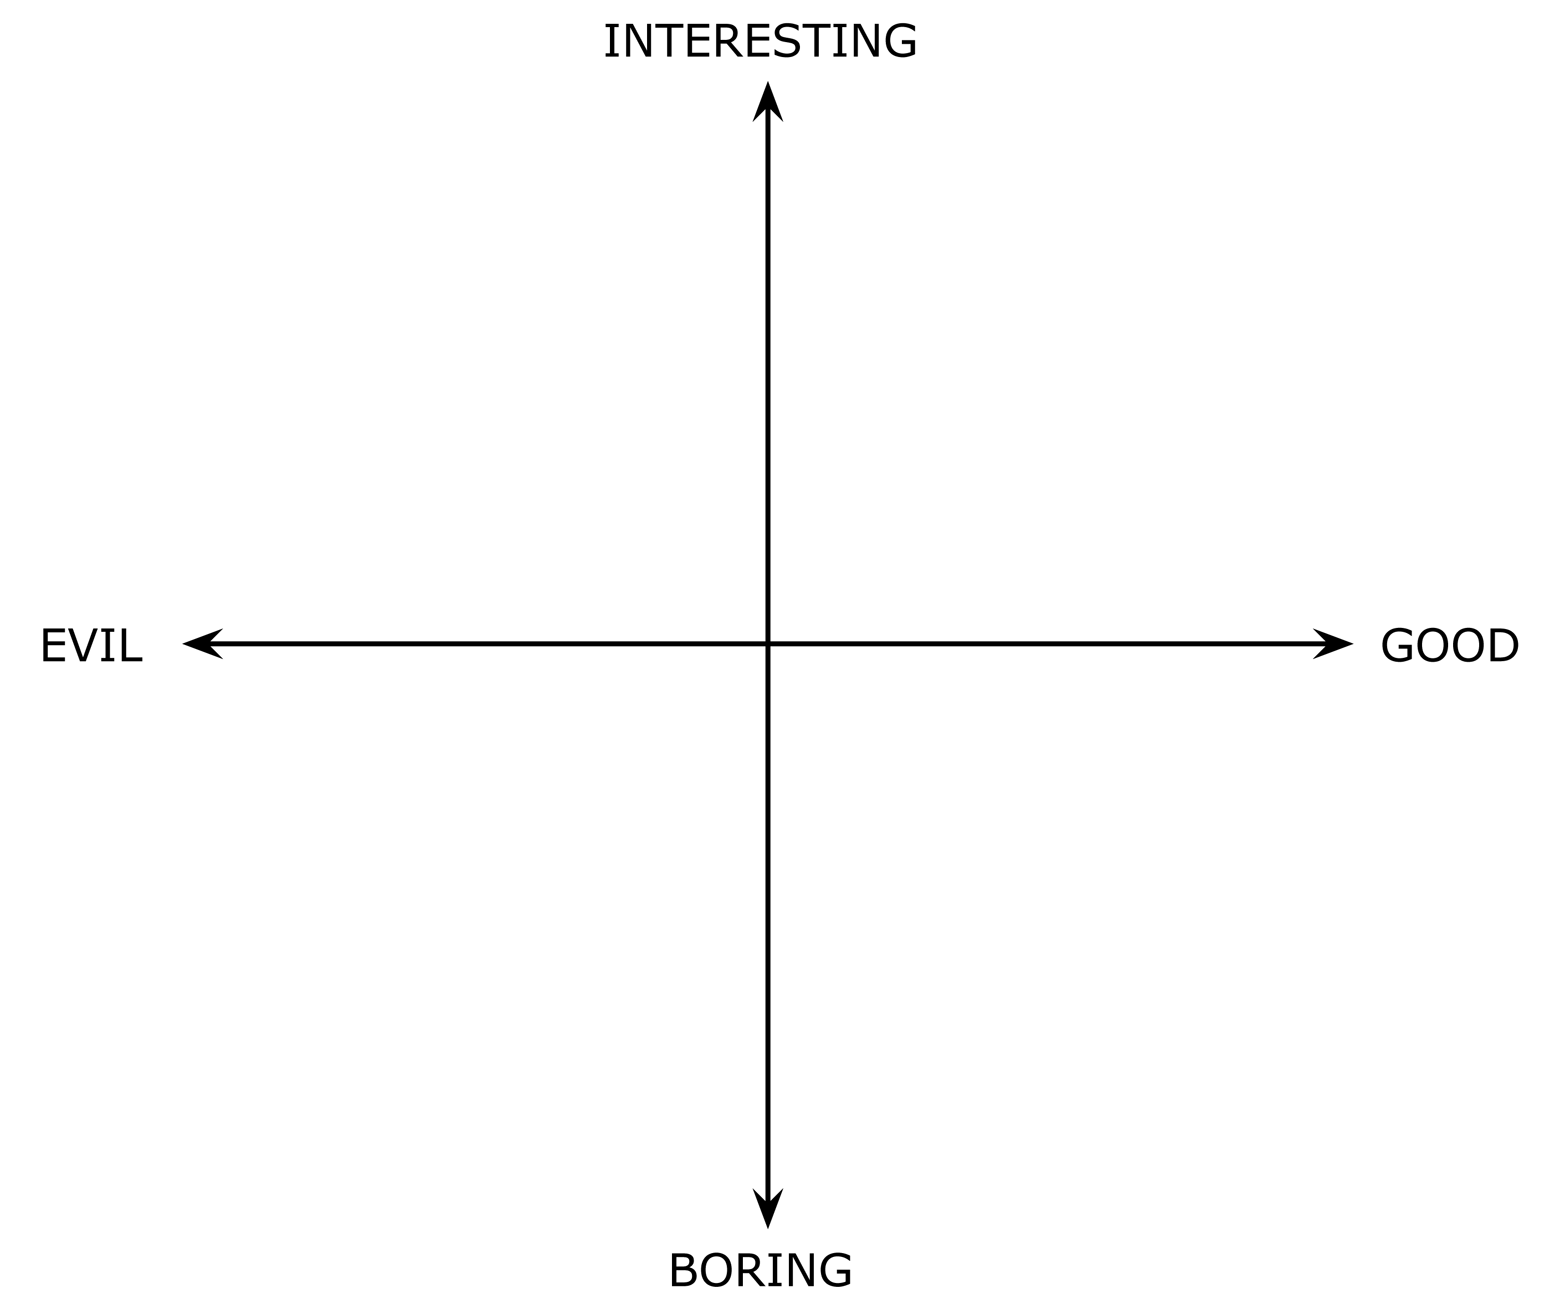 A useful chart to gauge potential work